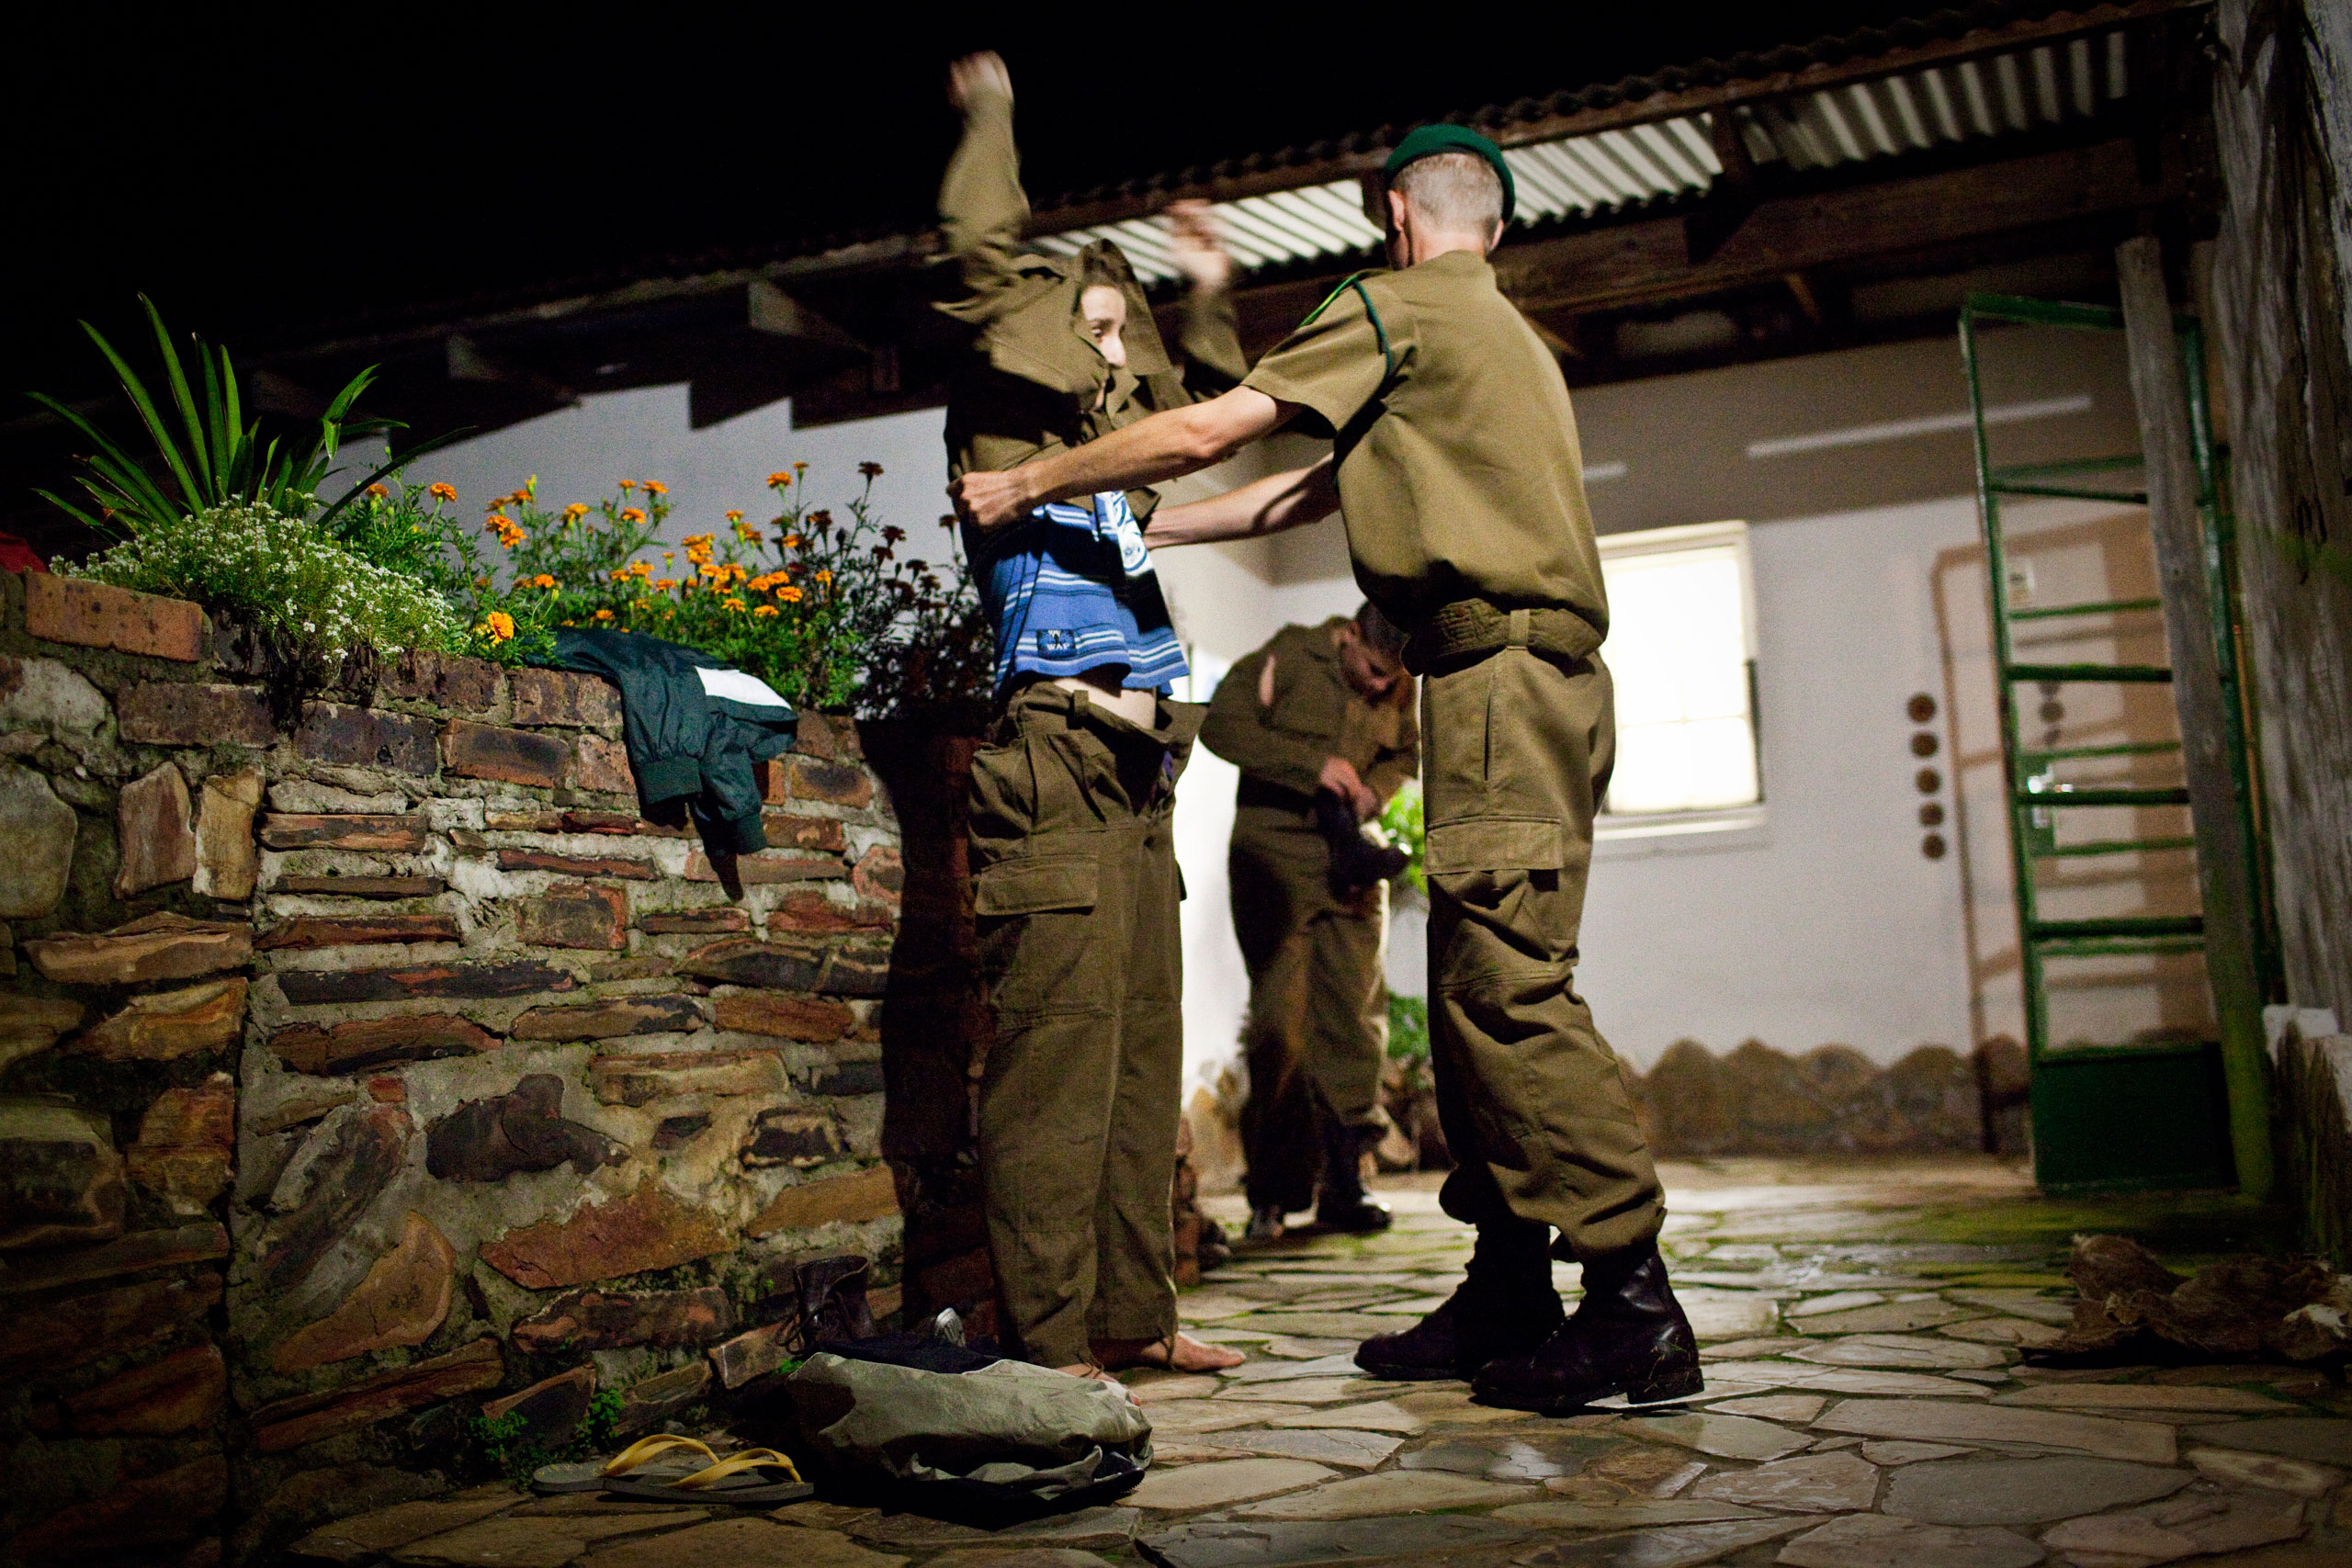 """One of the self-acclaimed sergeants at the camp helps one of the boys get dressed into old South African army uniforms, worn during apartheid. """"There are old blood stains on my uniform,"""" one of them says, as he trades his sneakers for army boots."""